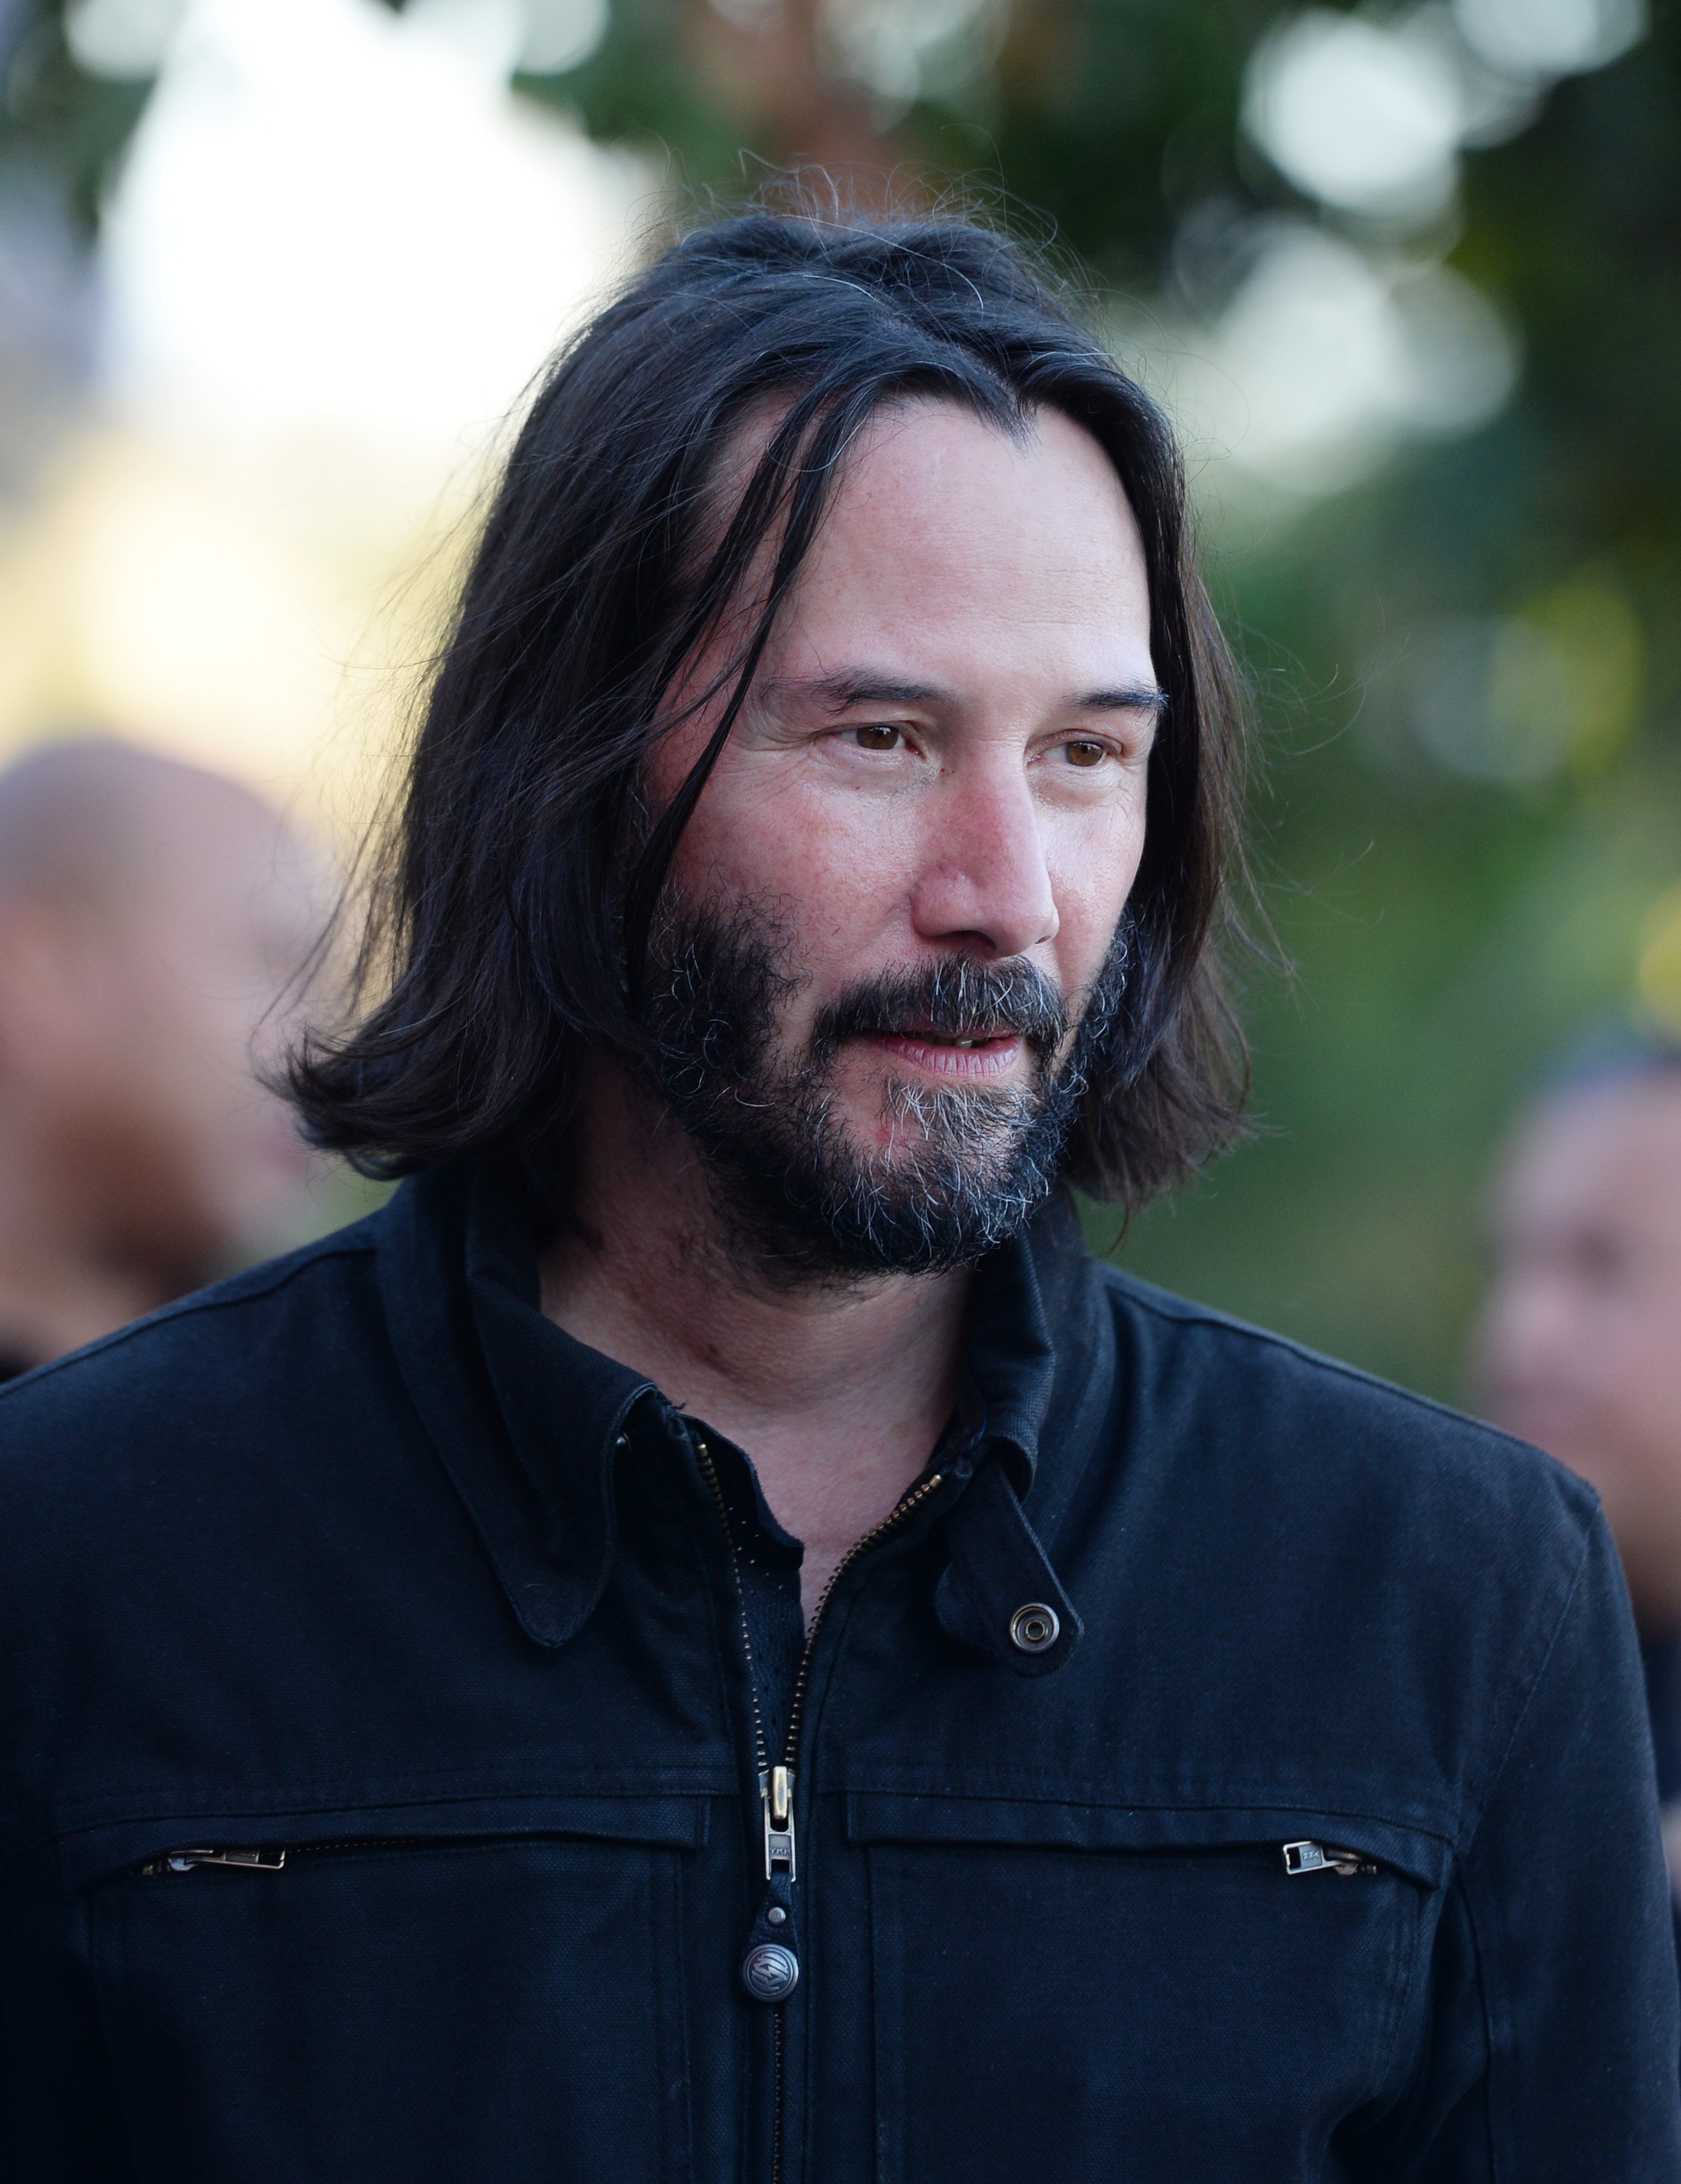 Image Source: Getty Images| Keanu Reeves at an event